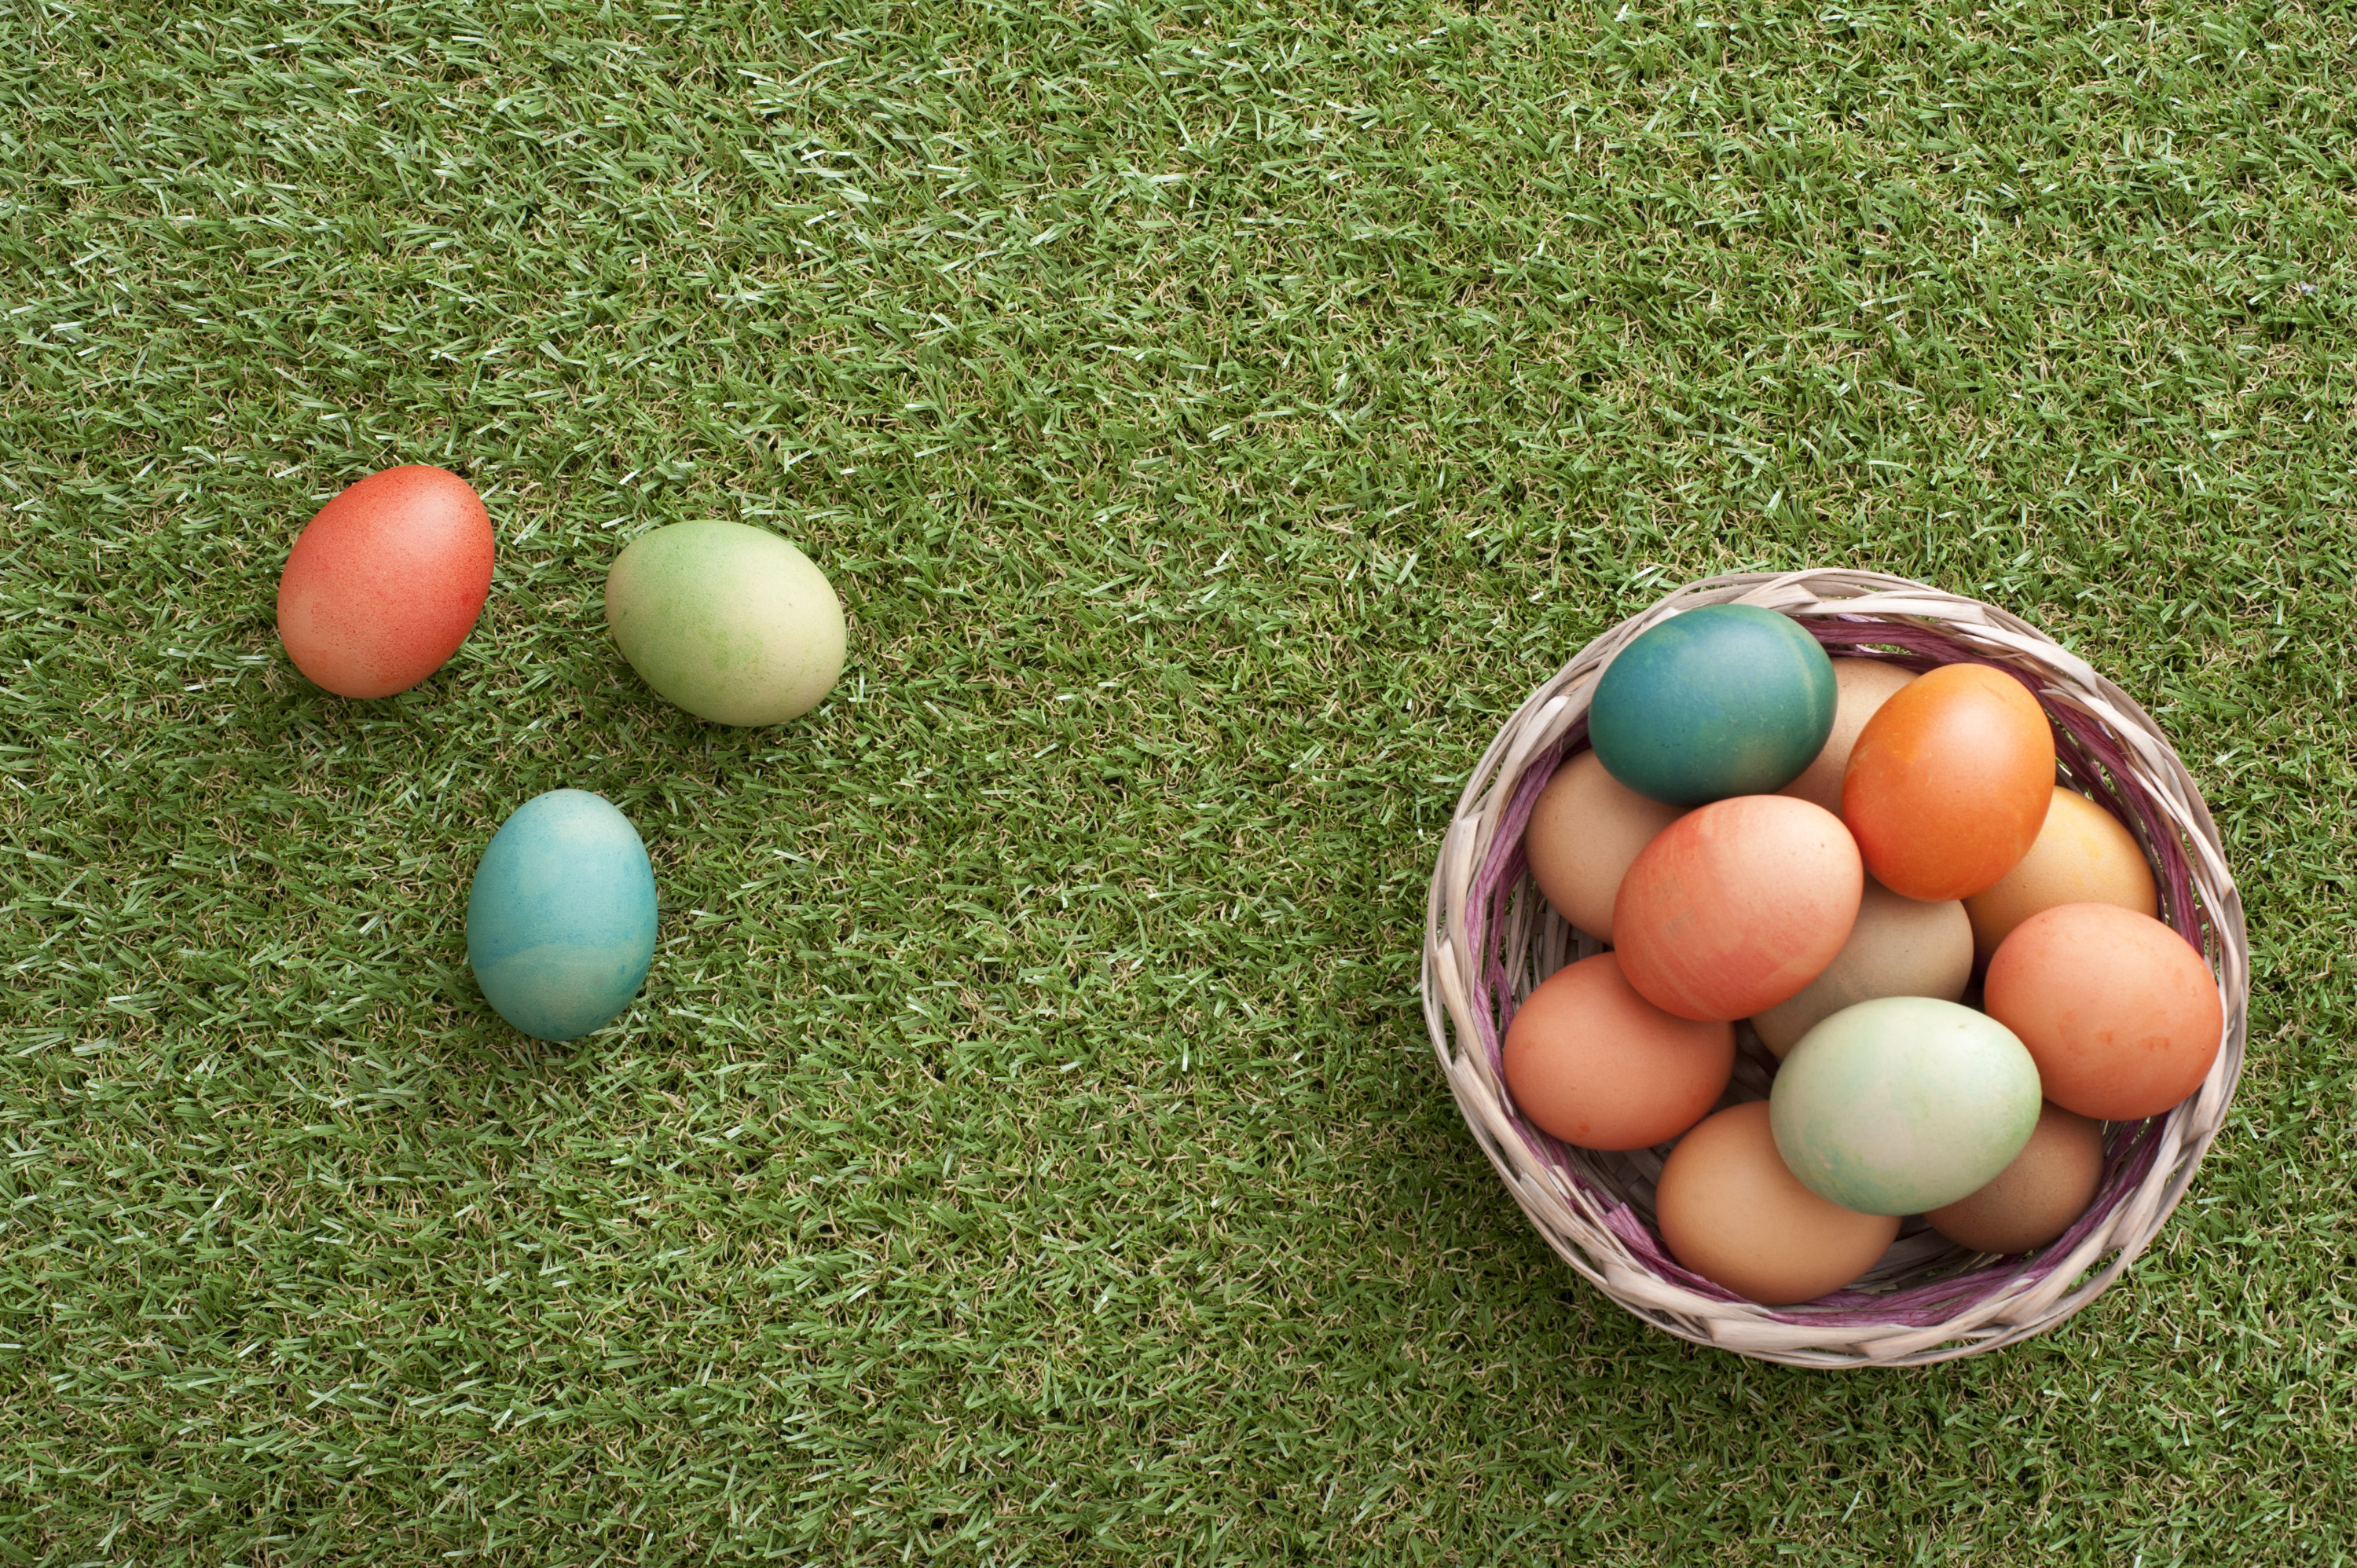 easter_eggs_hunt.jpg - Overhead view of three colorful Easter eggs in grass beside woven basket filled with more of them